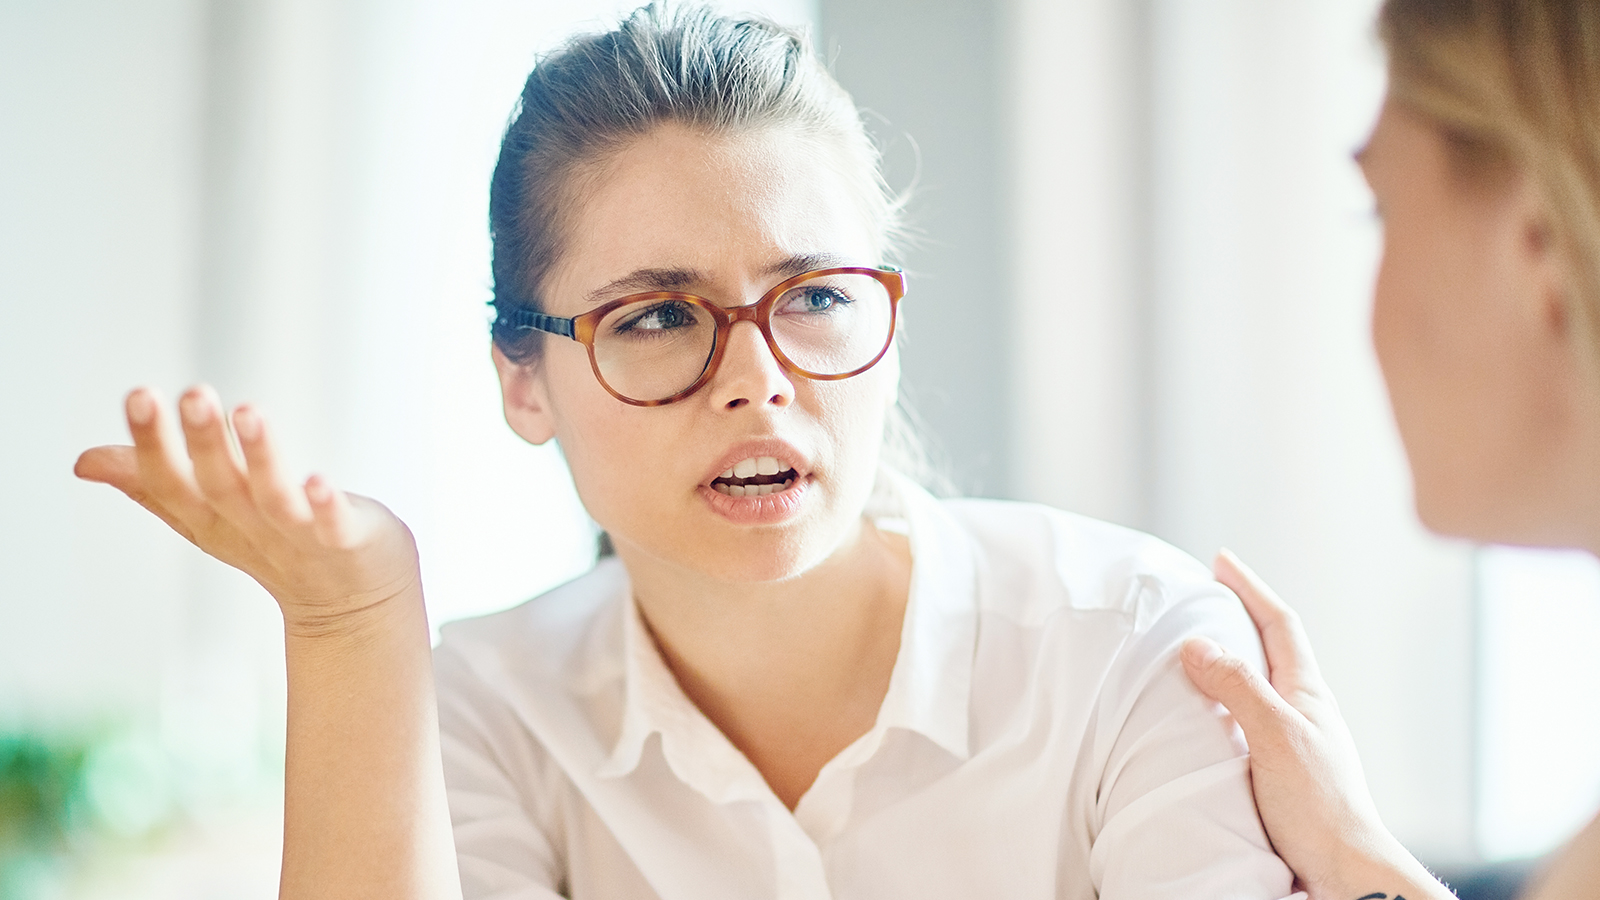 This Is The Right Way To Disagree With Coworkers